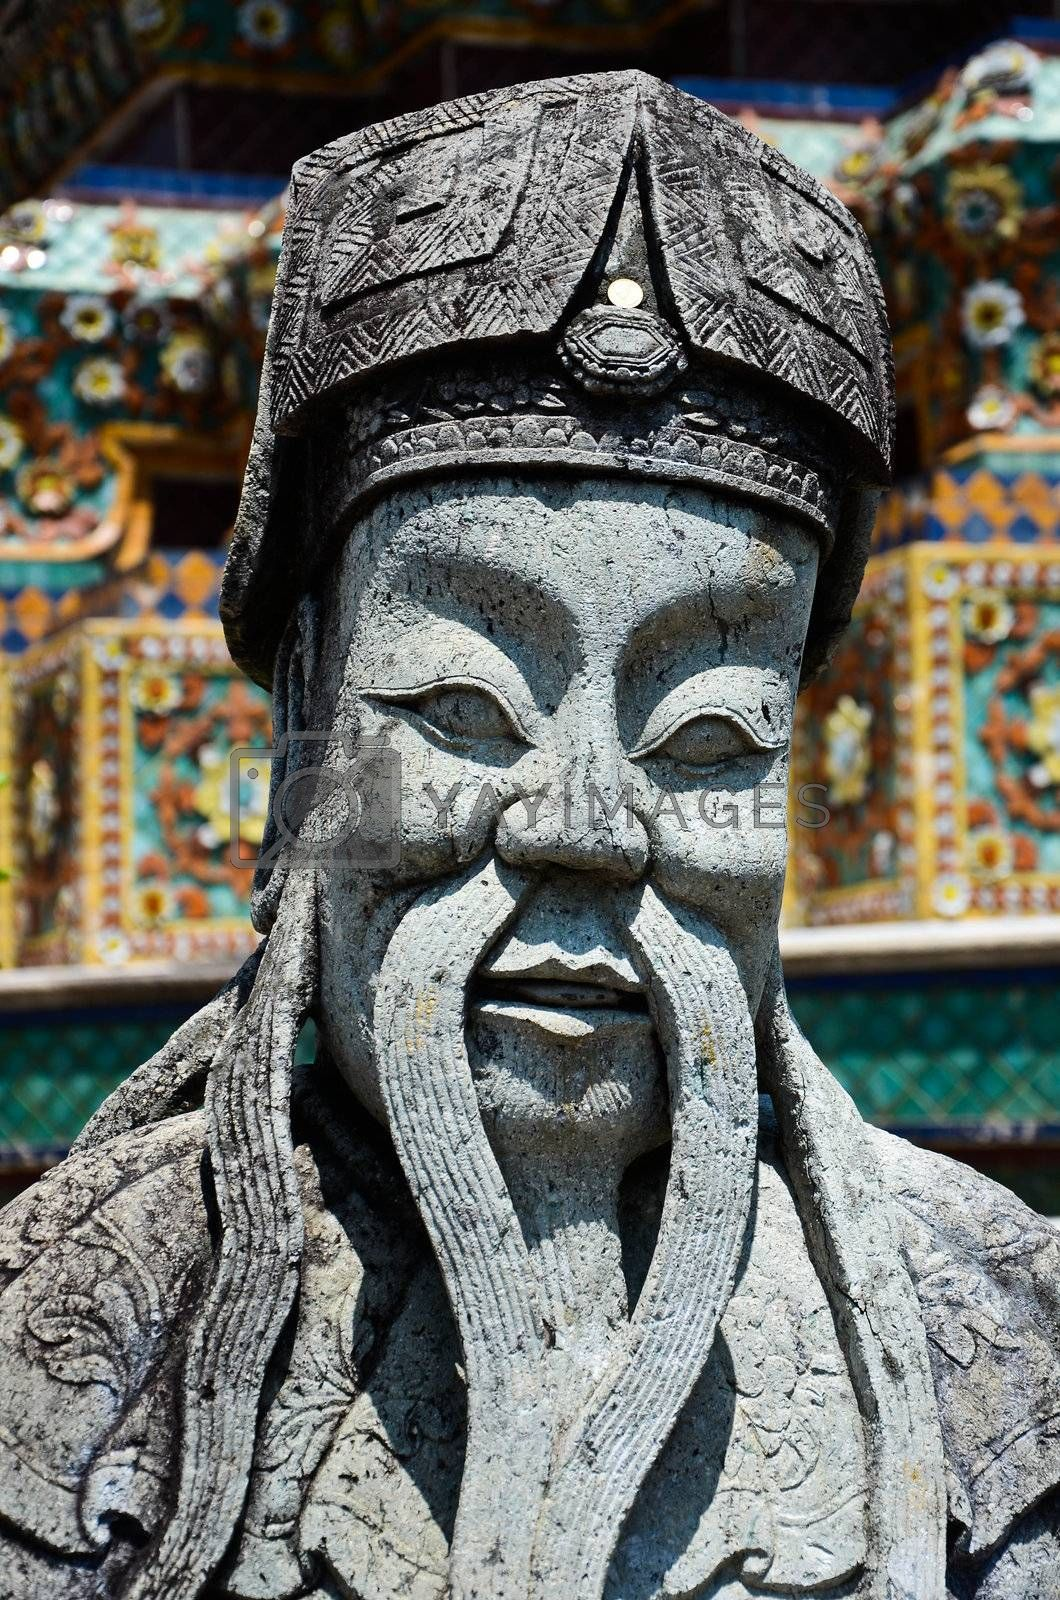 Photo of Chinese Sculpture by krajidrid